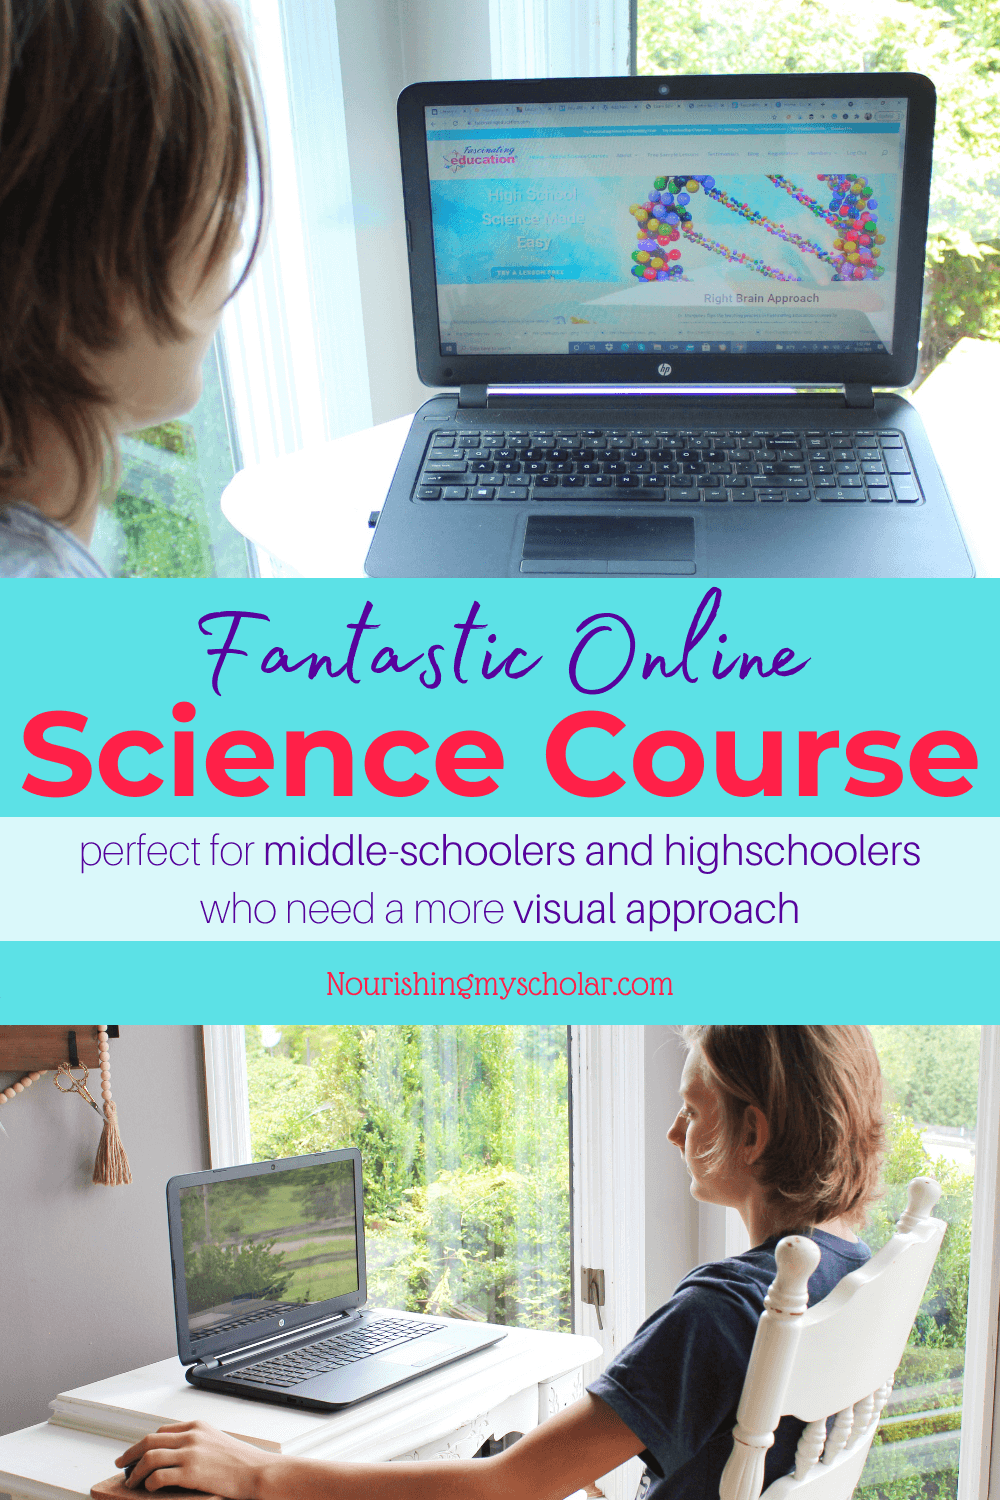 Fantastic Online Science Course: Are you looking for a flexible, self-paced online science course for your middle-schooler or high schooler? Maybe your teen needs more of a visual approach to science. Science doesn't have to mean a dry textbook! Discover a different approach to science courses for your homeschool. #scienceonline #FascinatingEducation #onlinesciencecourse #introductiontoChemistry #middleschoolChemistry #fantasticonlinesciencecourse